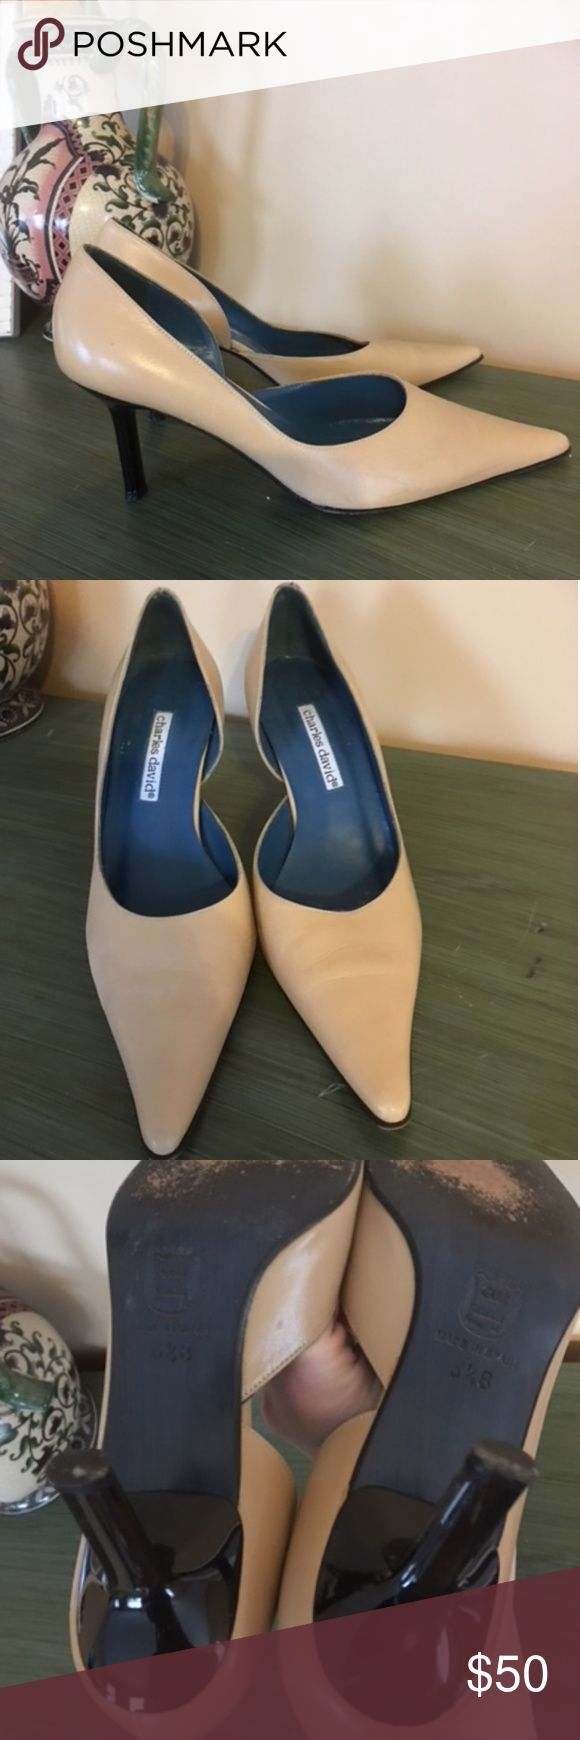 Charles David Vintage Heels Excellent condition.  Cream leather with black shiny heel. Charles David Shoes Heels